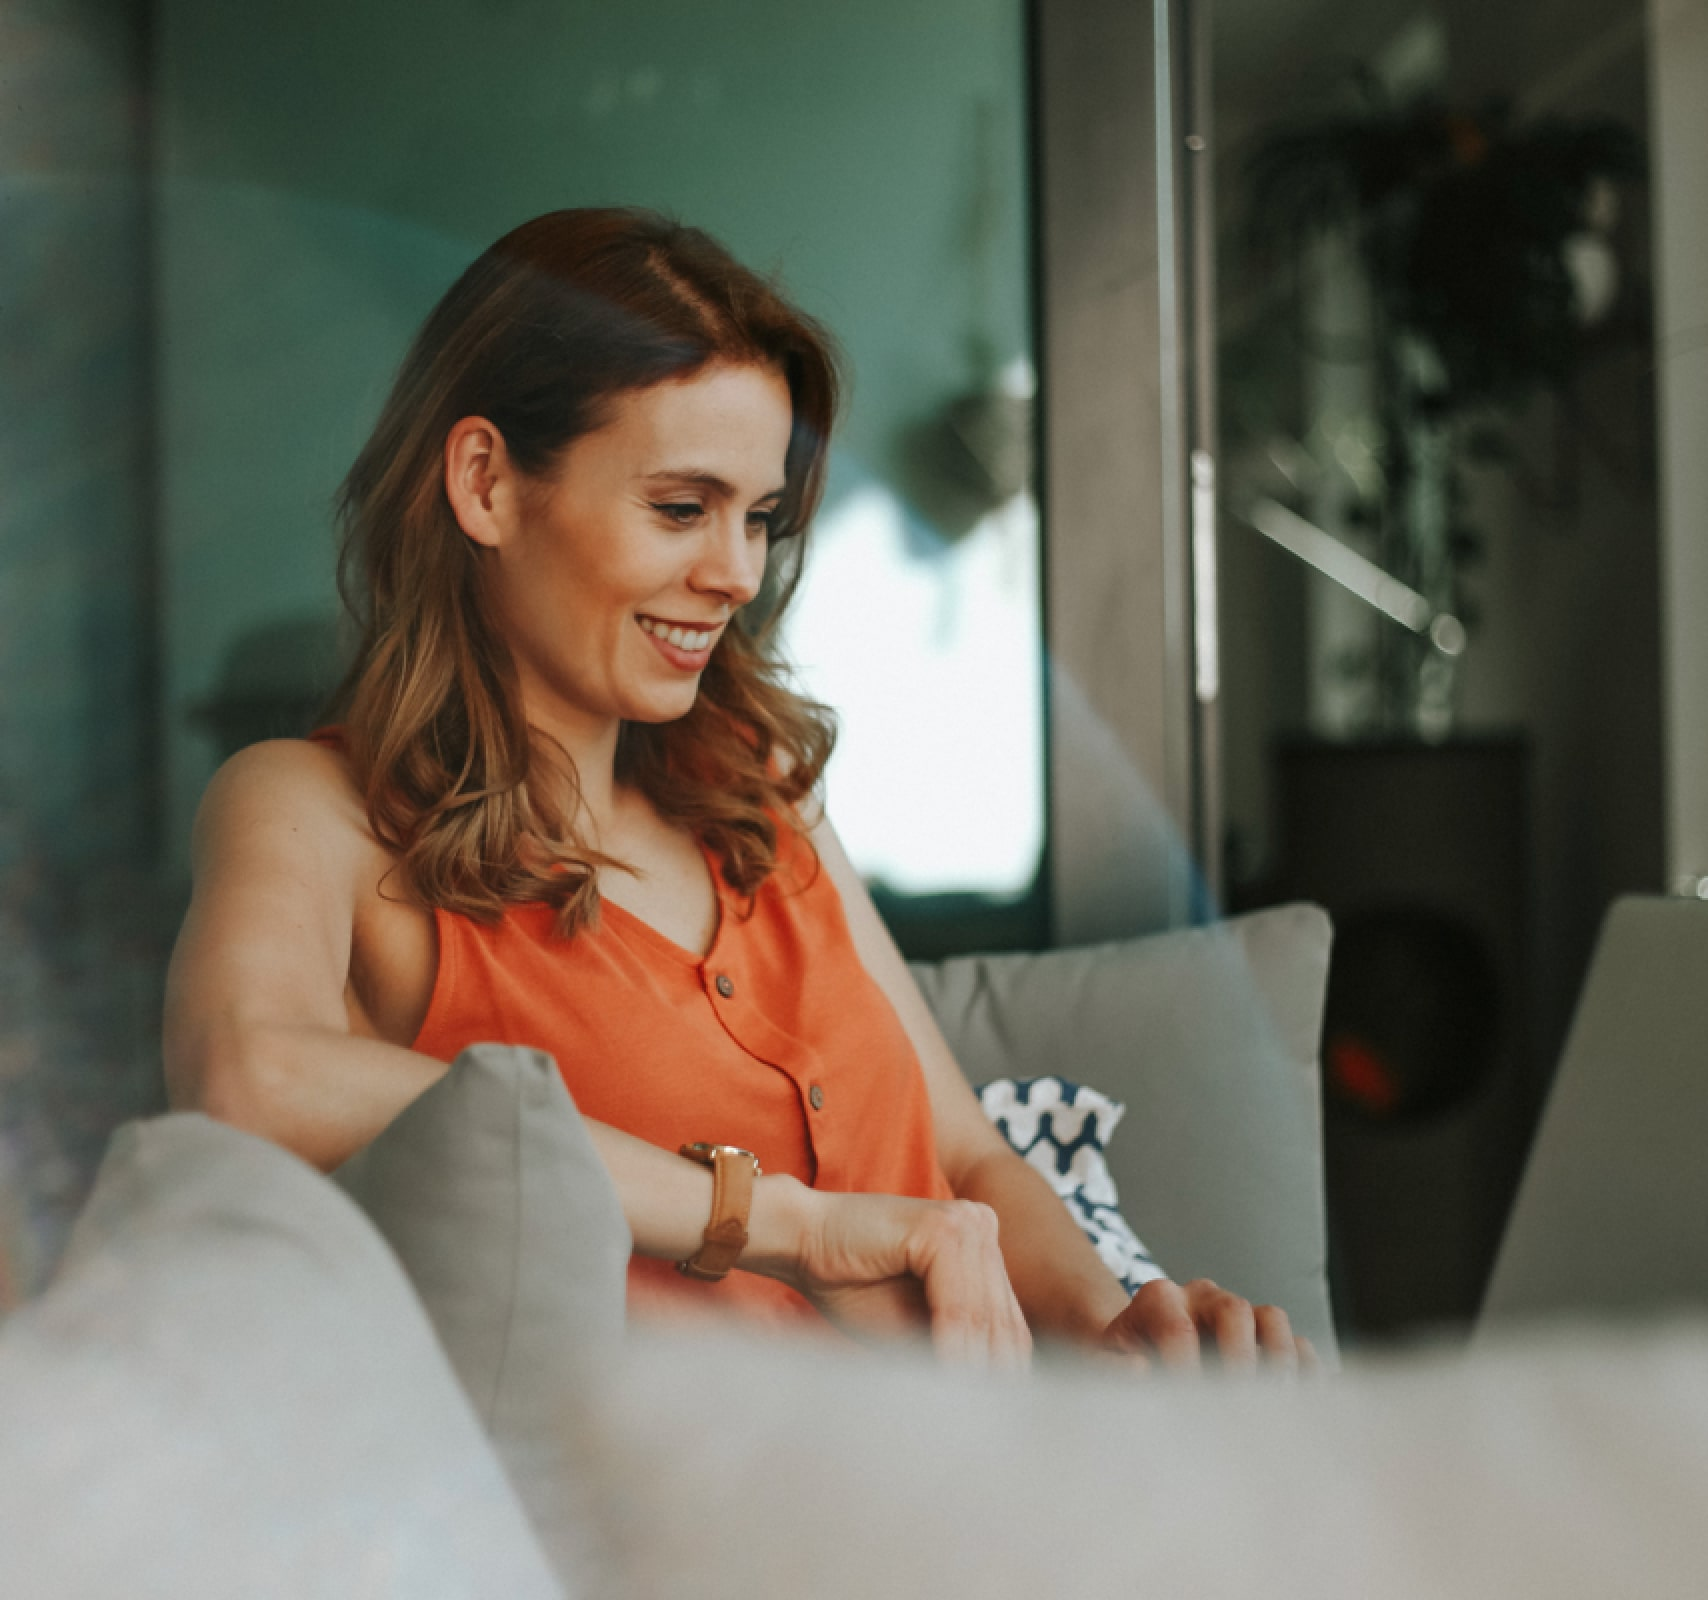 woman in orange blouse working with laptop while sitting on sofa